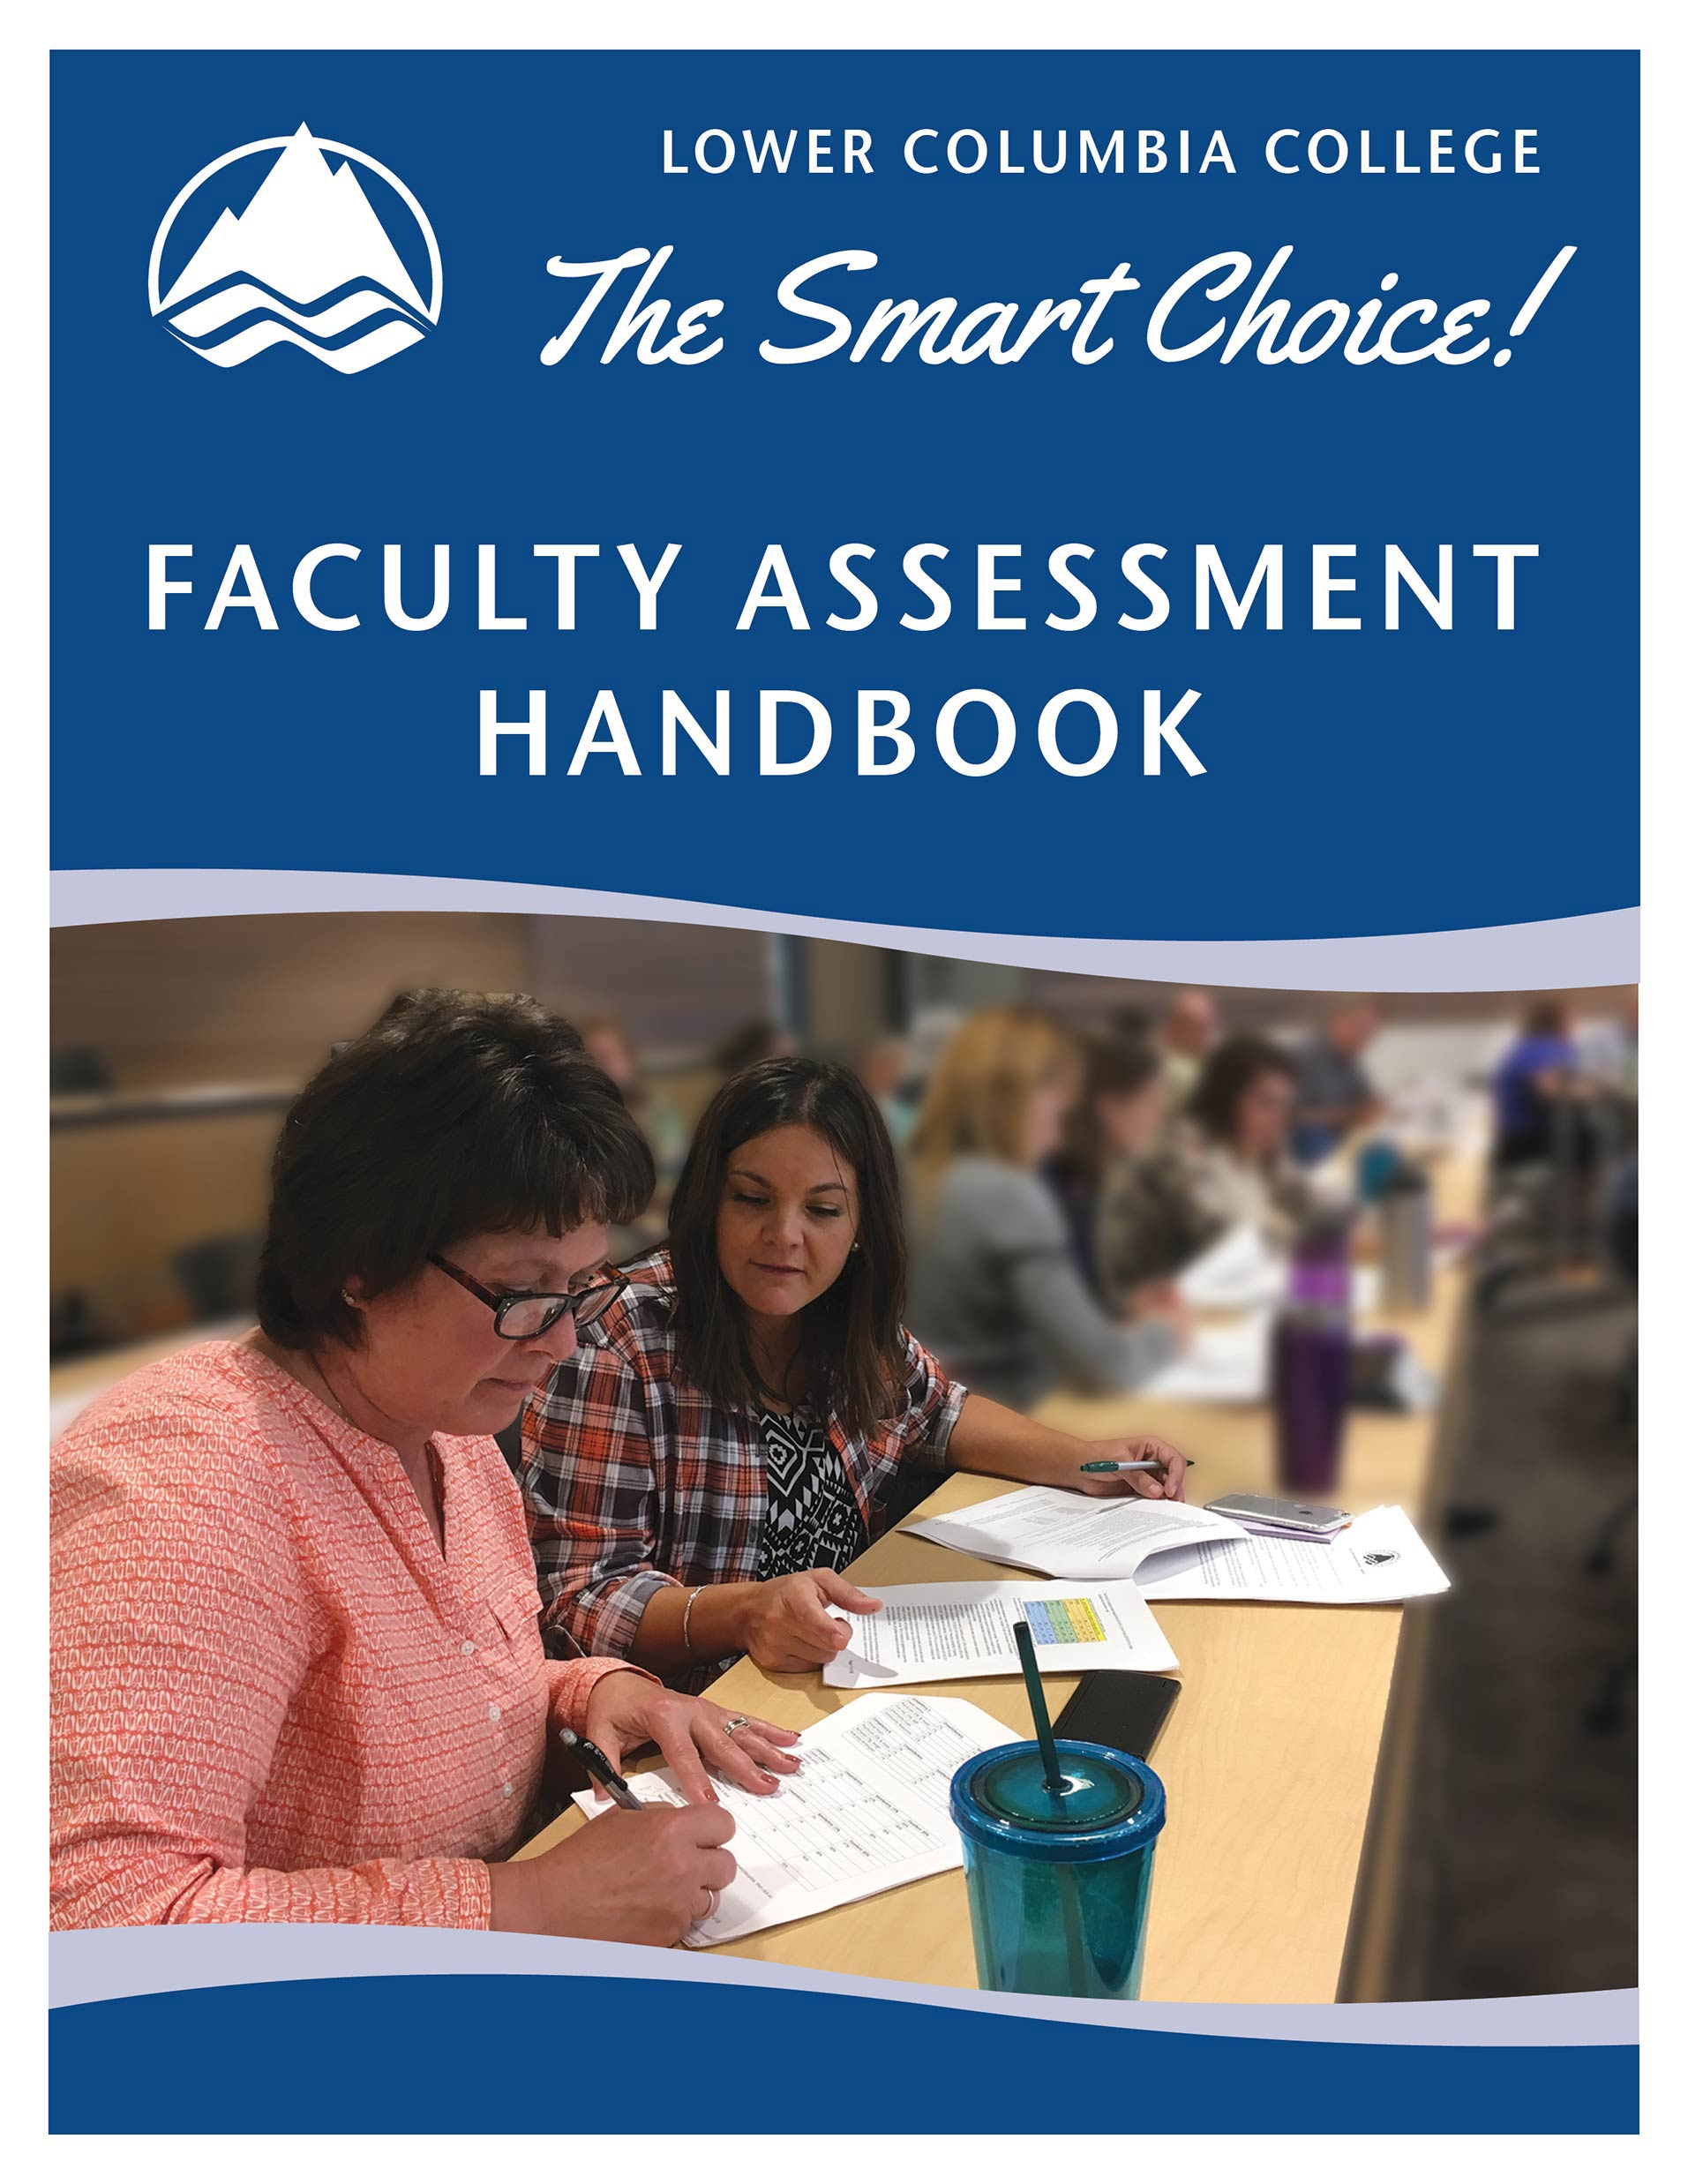 Faculty Assessment Handbook